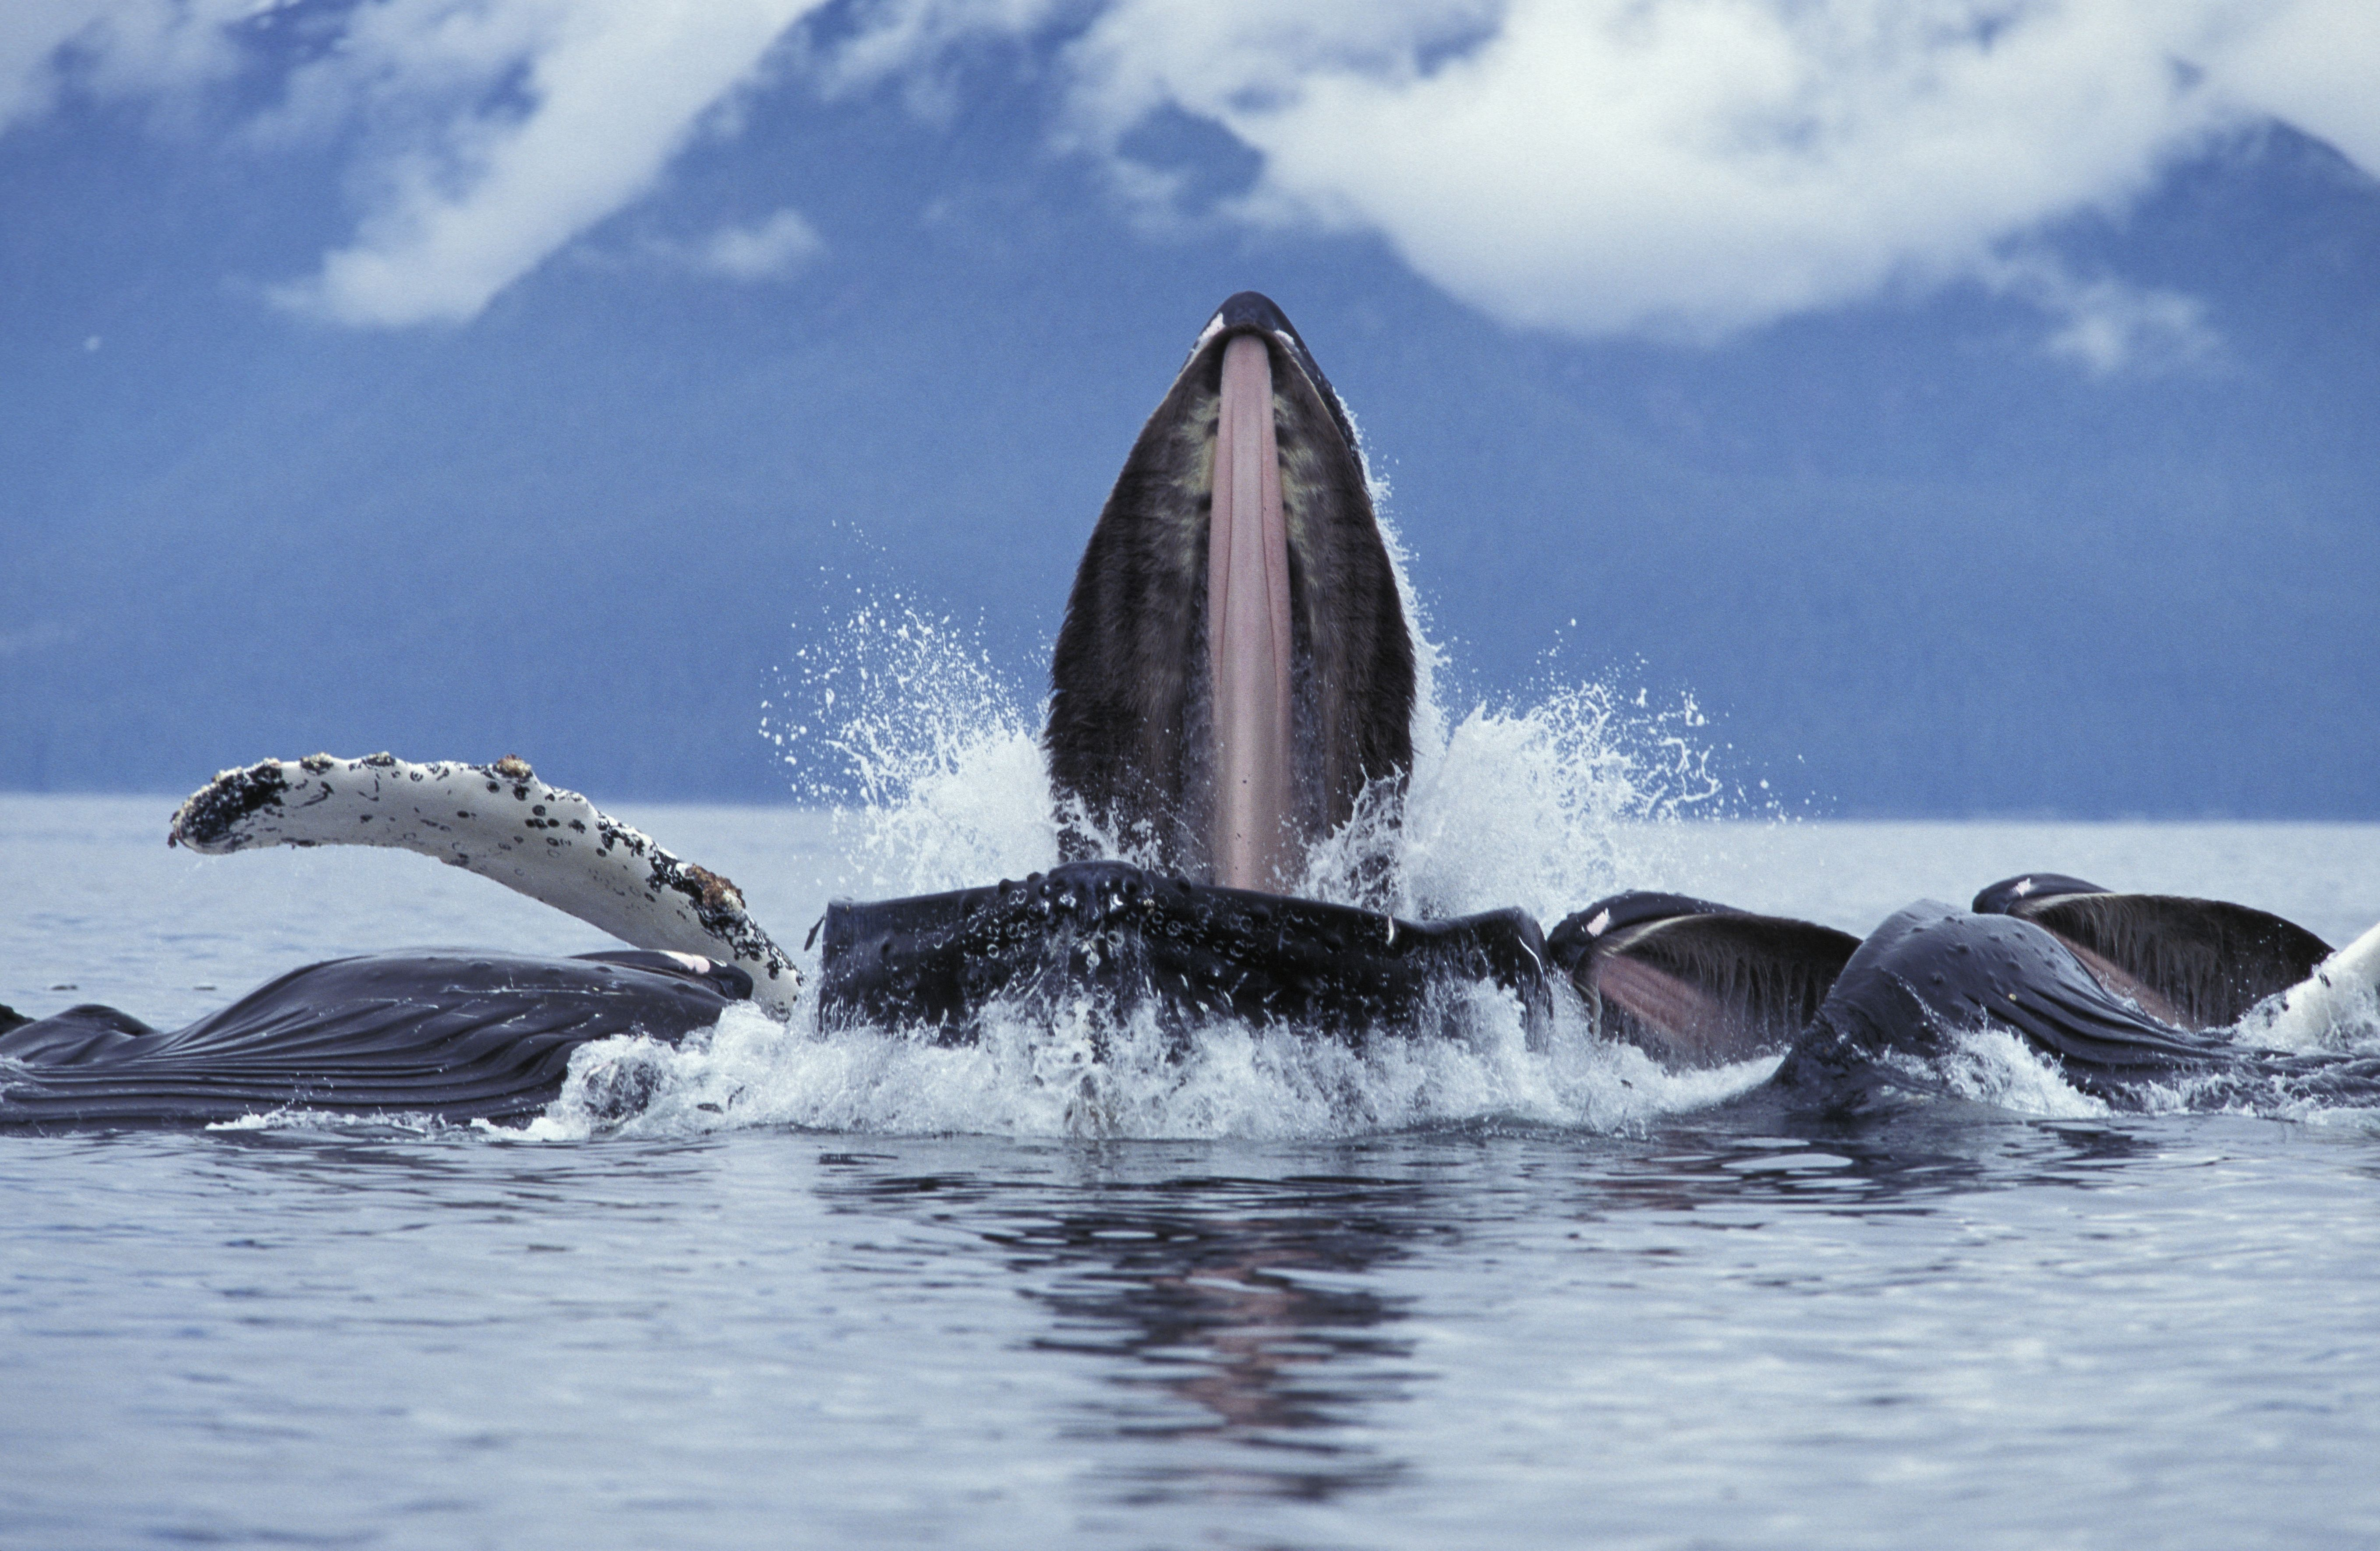 Alaska Humpback Whales Under The Sea Animals Work With Animals Whale